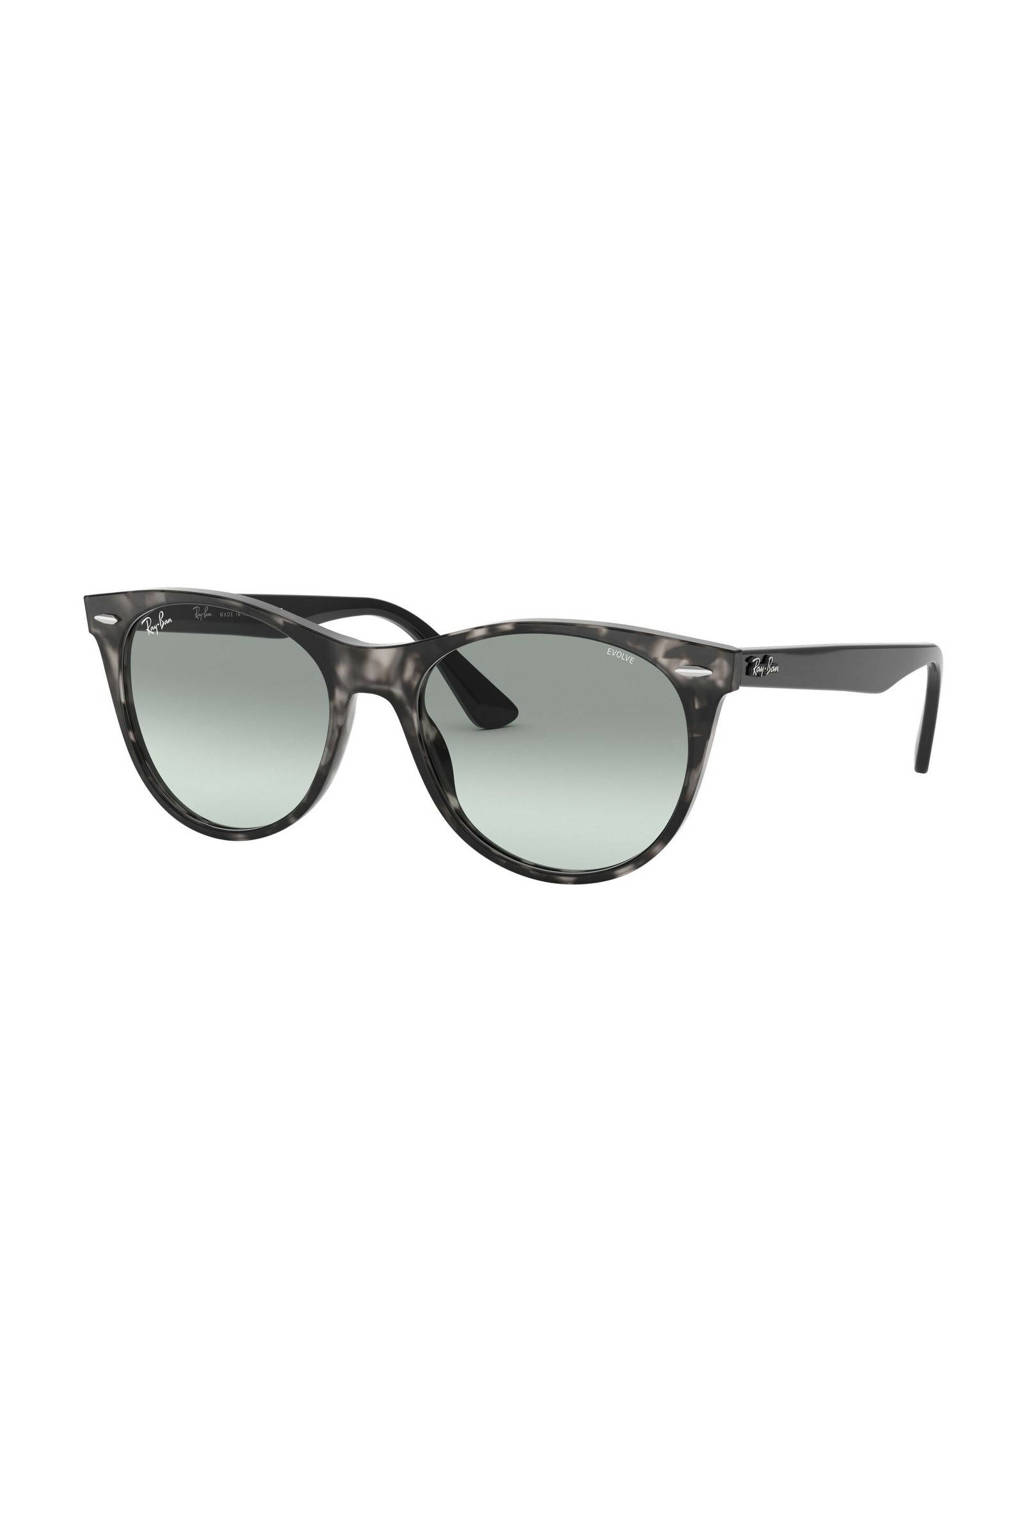 Ray-Ban zonnebril 0RB2185, Blauw